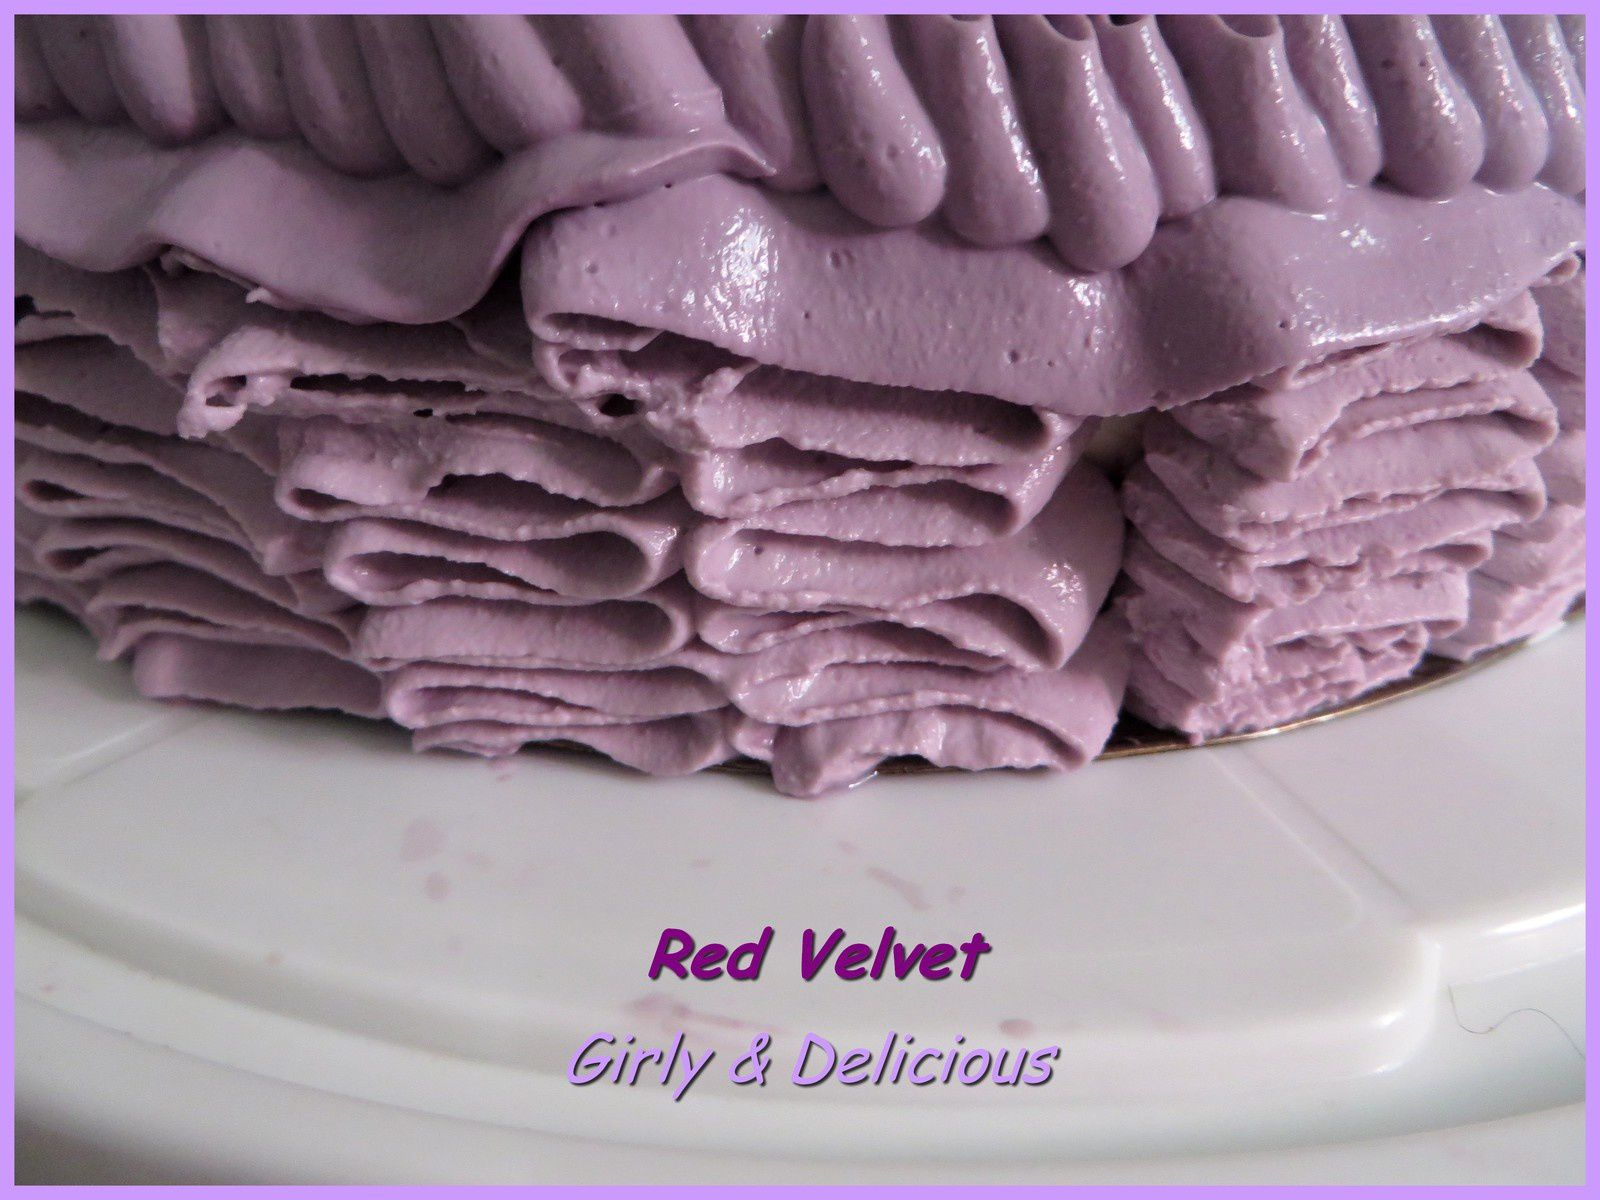 Pimp my cake : Red Velvet Layer Ruffle cake (Gâteau froufrou)